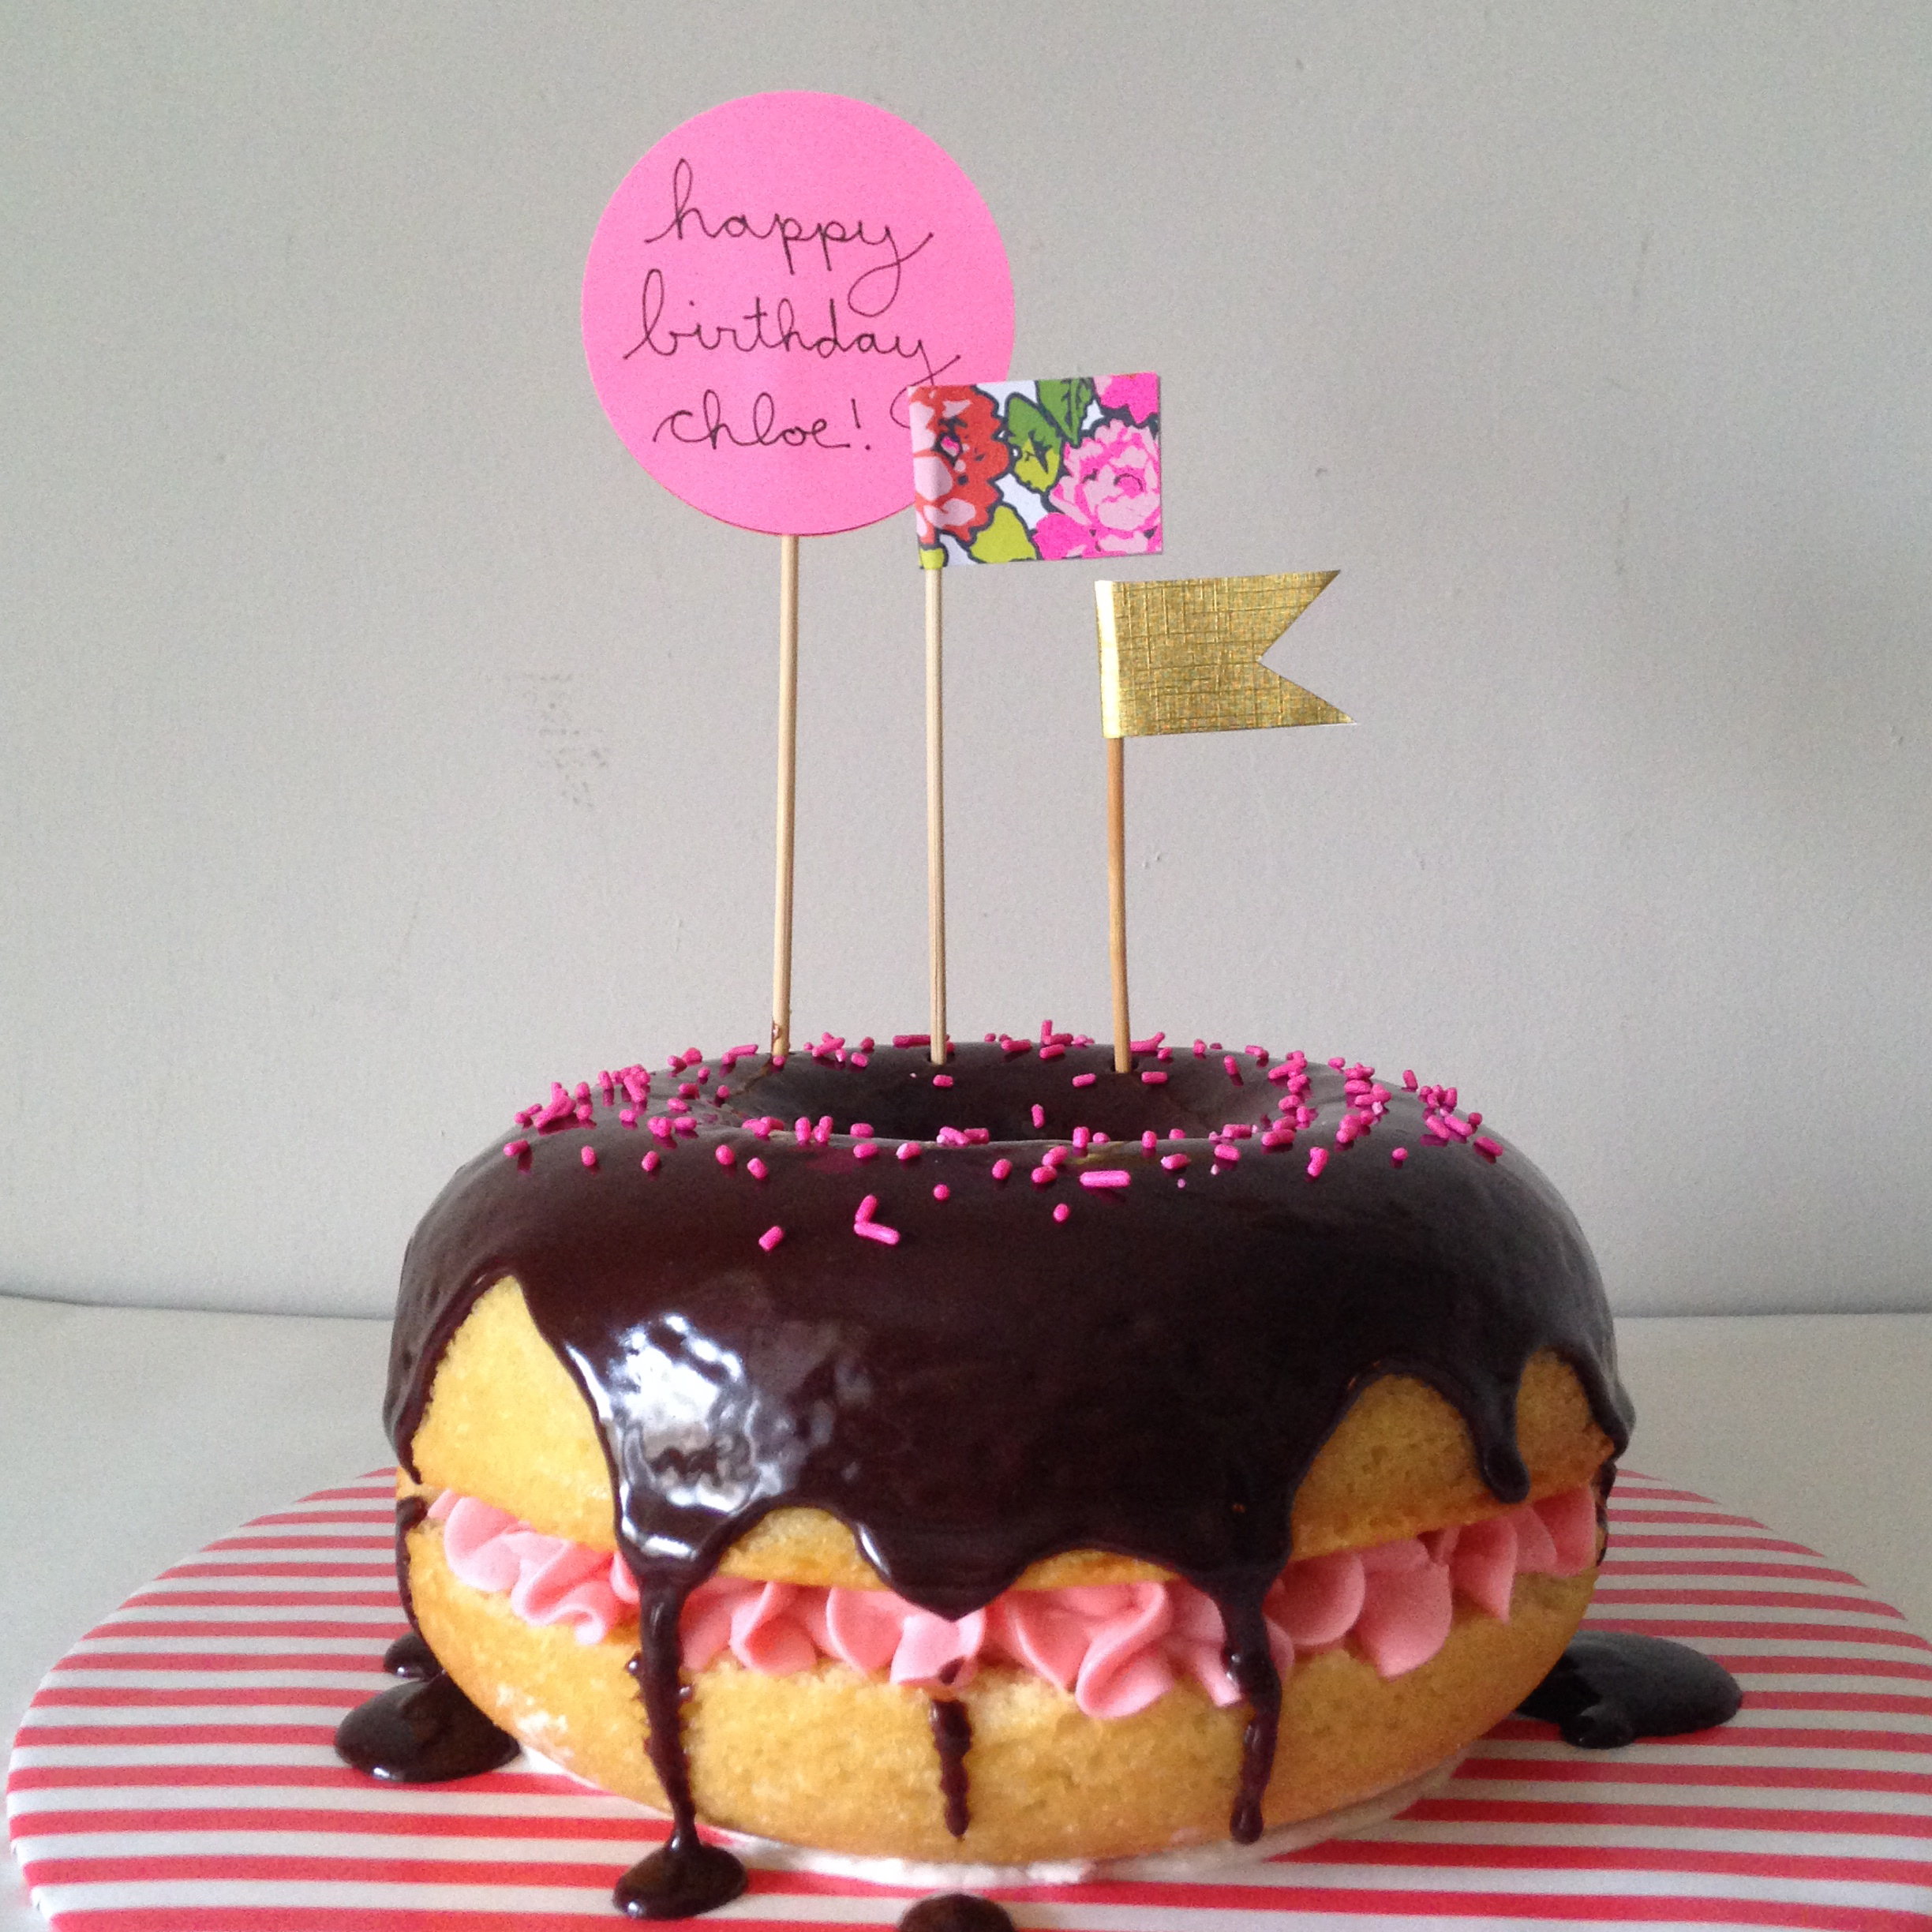 doughnut cake with paper flags